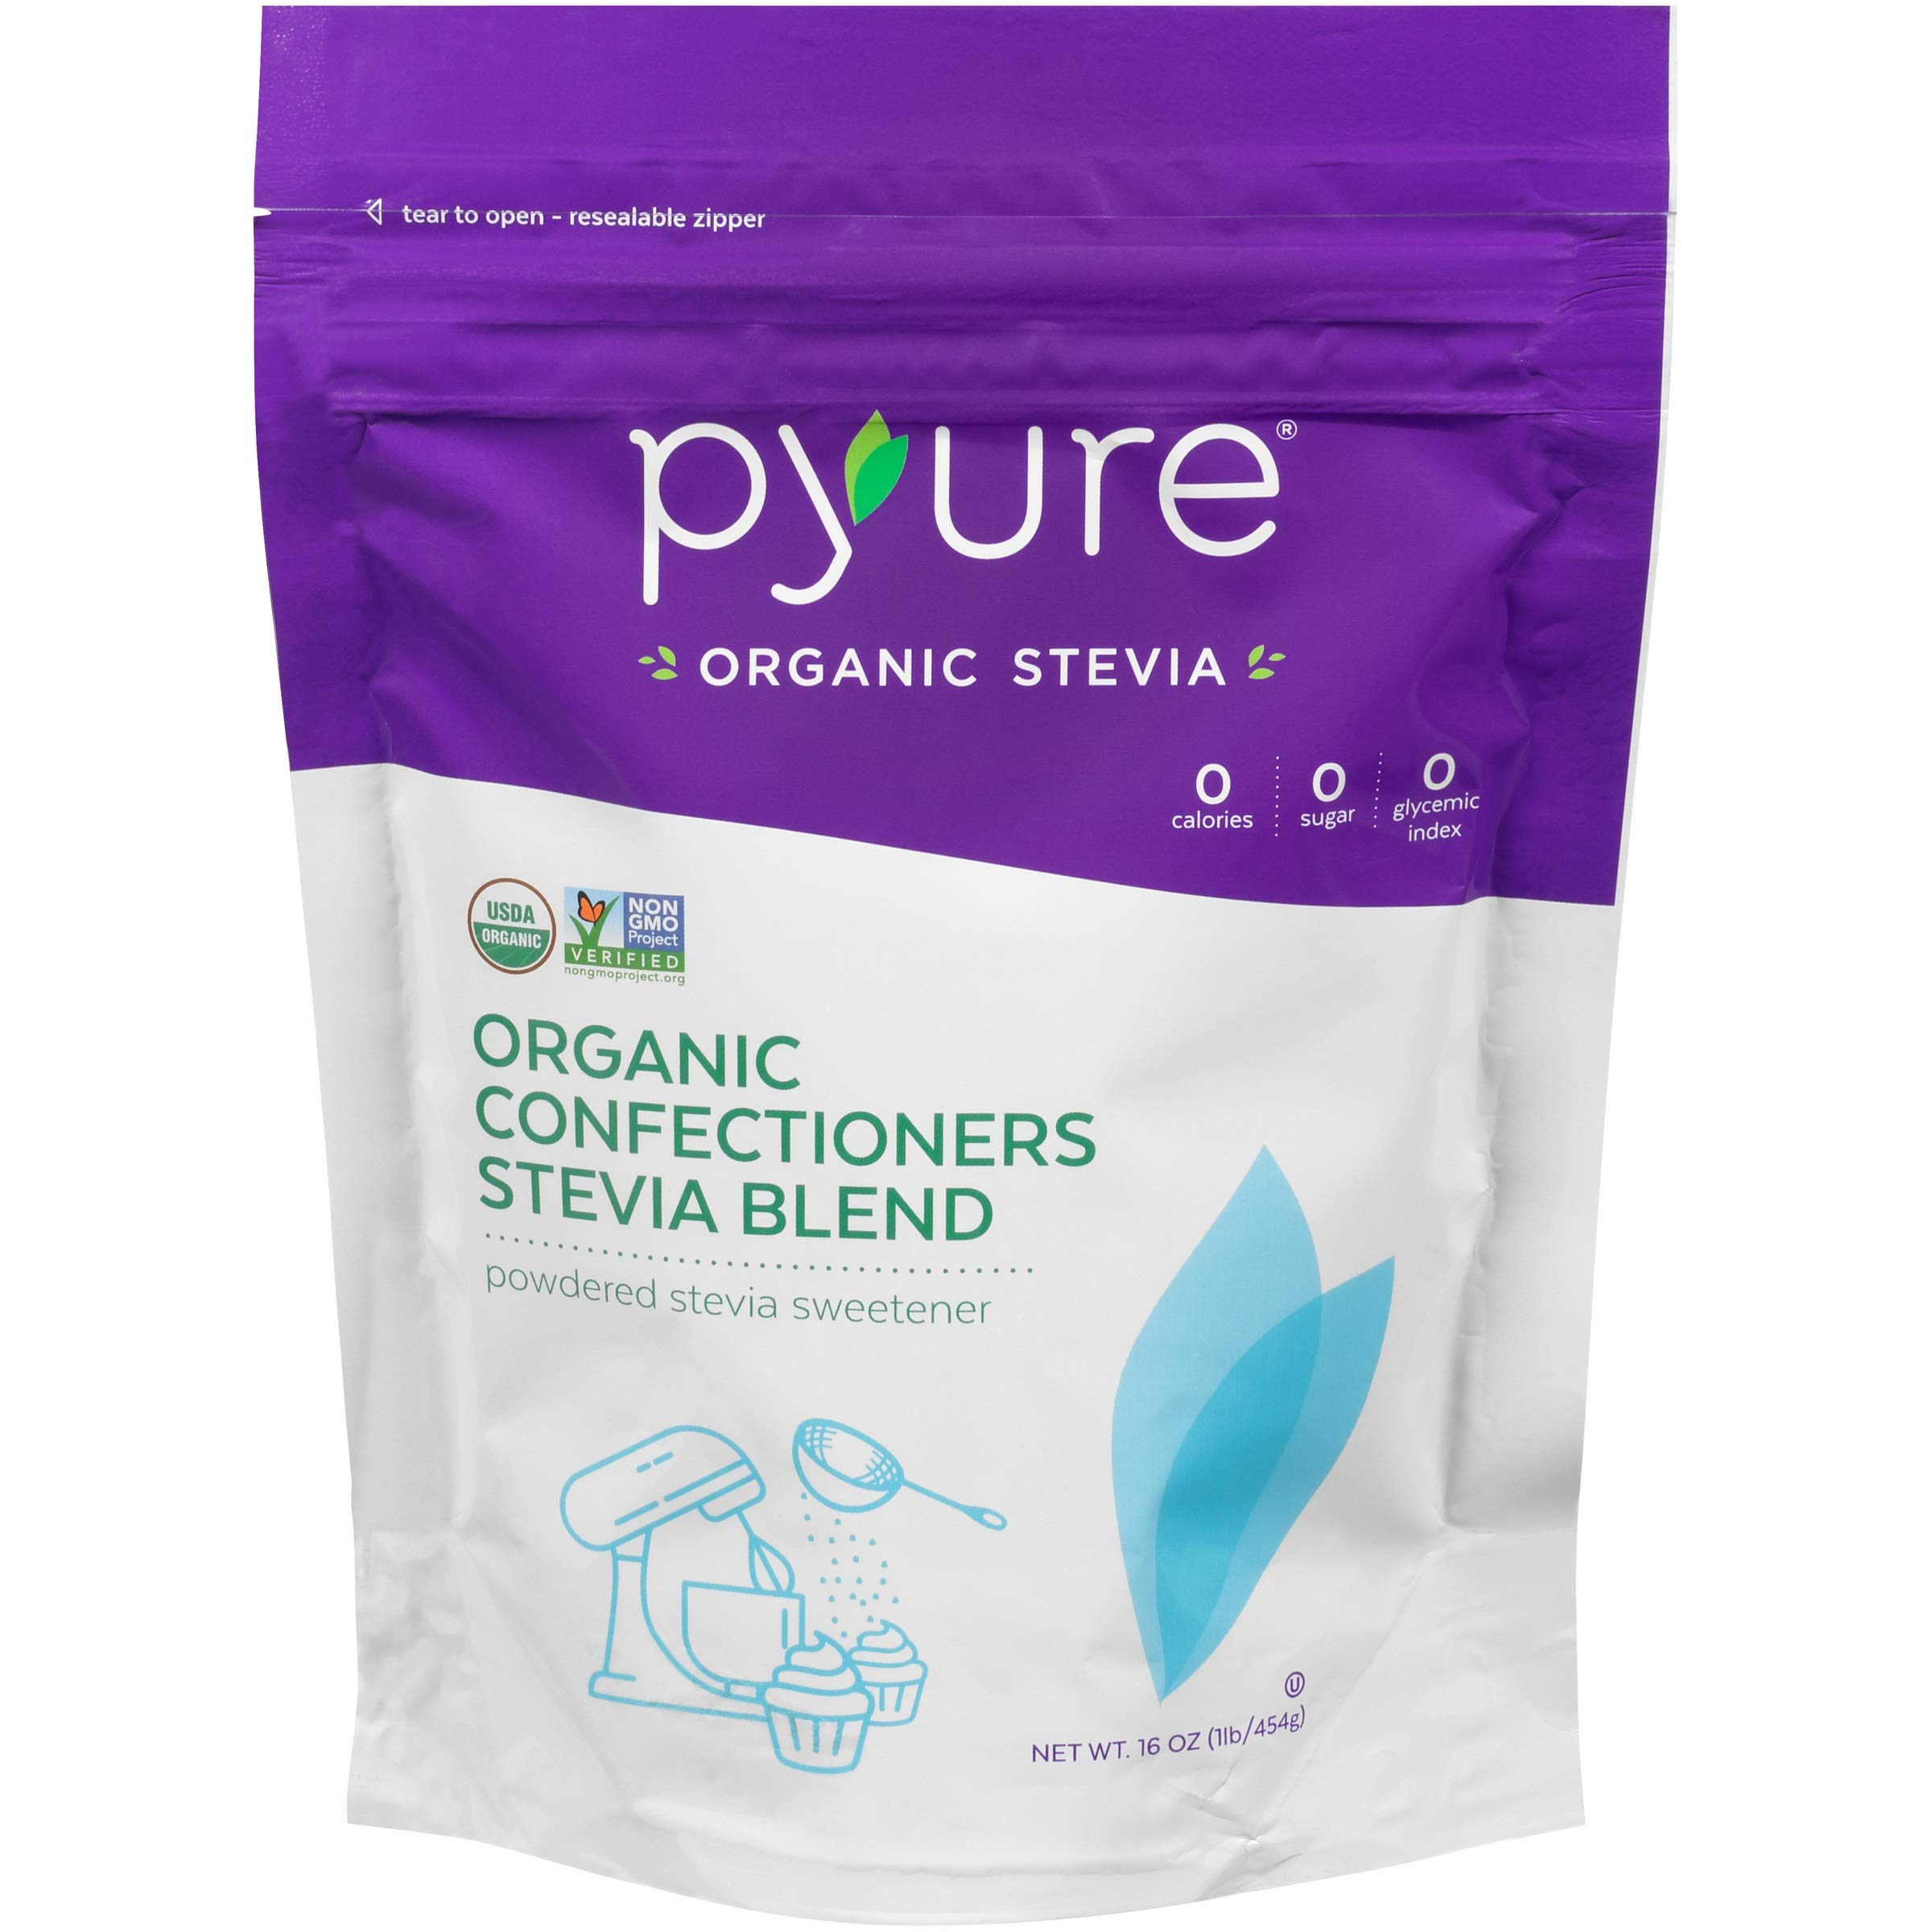 Pyure Organic Confectioners Stevia Blend, Powdered Sugar-free Sweetener, Keto, 16 oz by Pyure (Image #3)